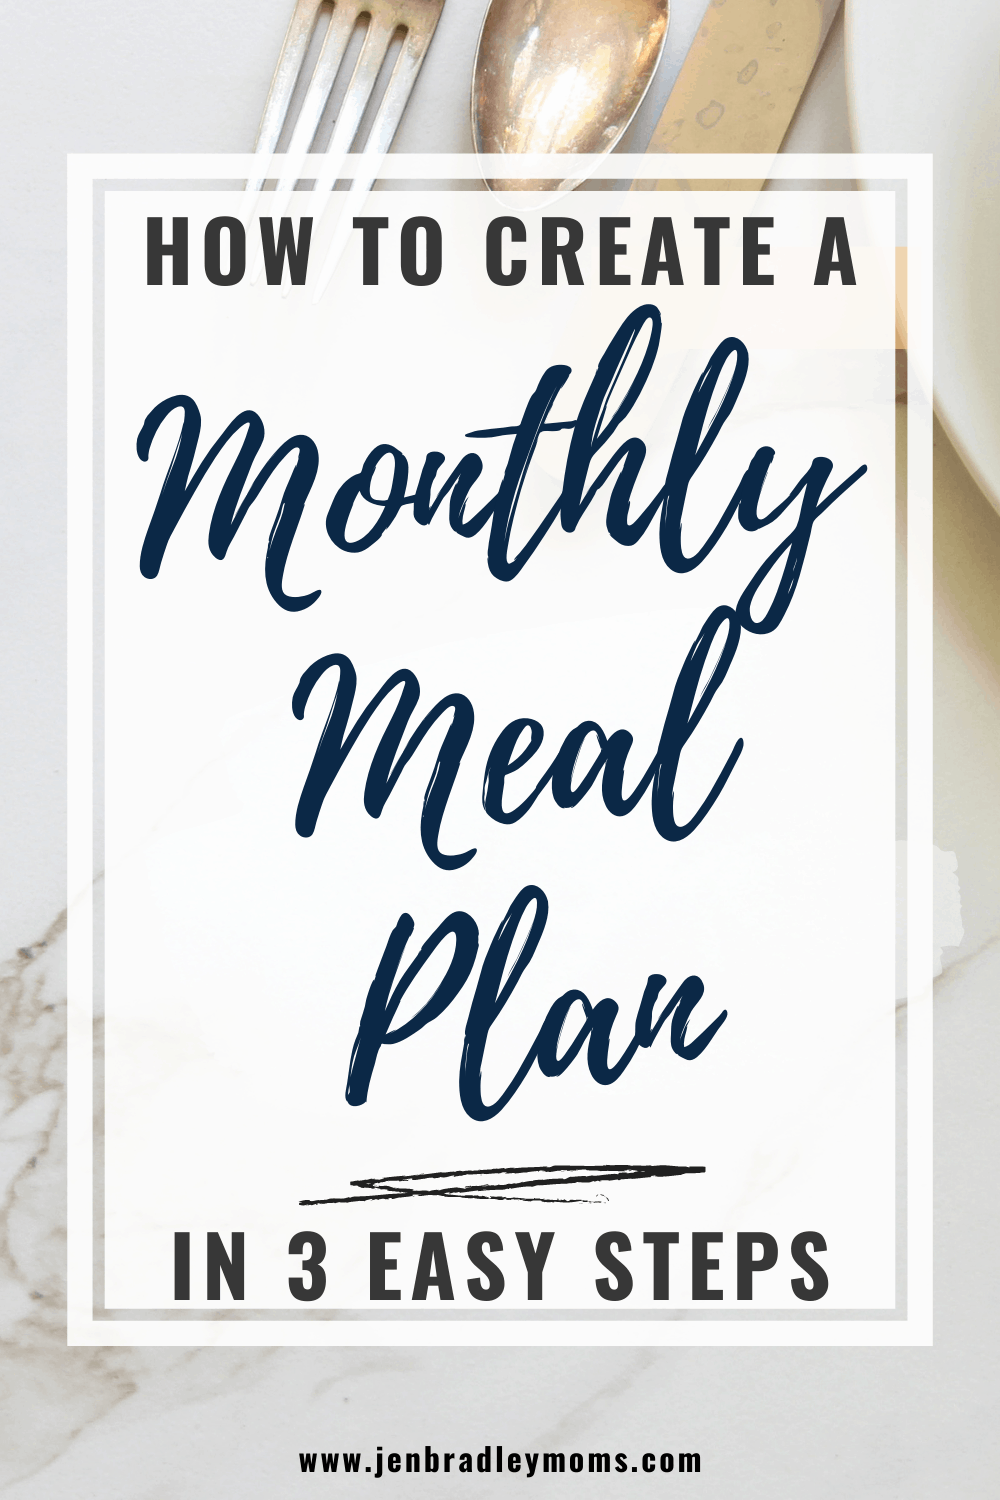 3 Easy Steps to Creating Your Amazing Monthly Meal Plan